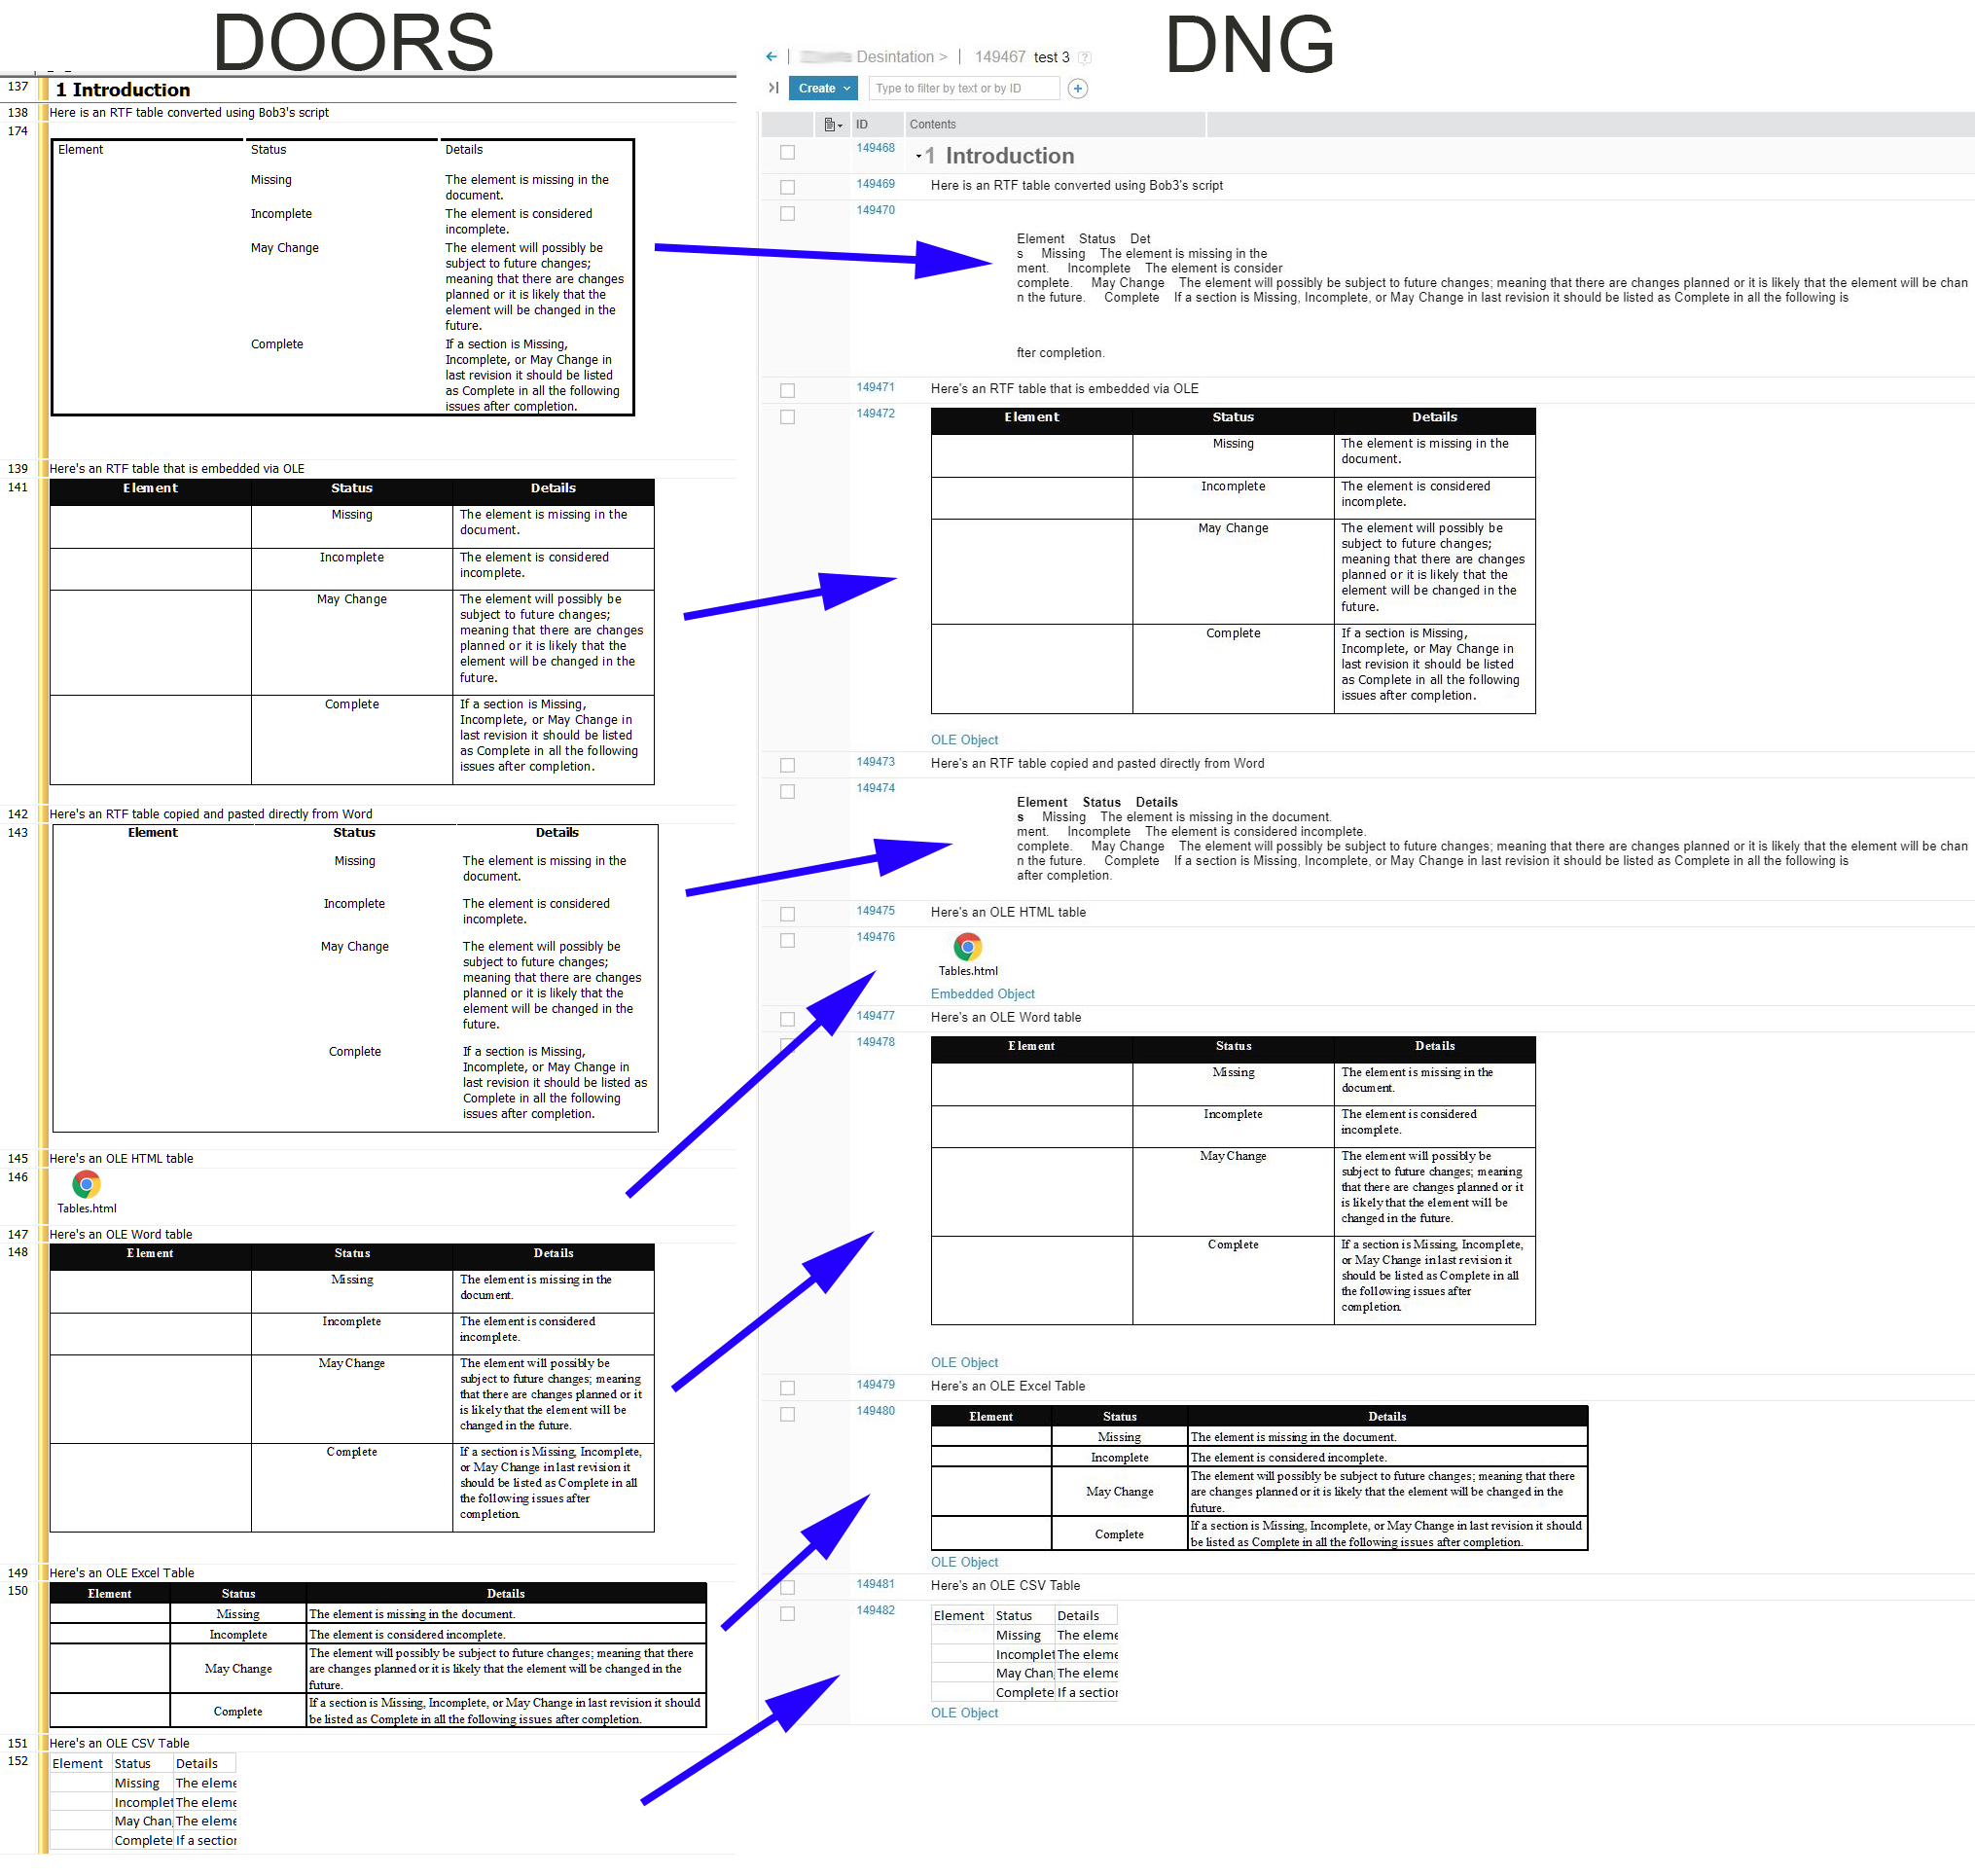 Structure Table Migrating Rtf Table In Doors To Dng And All Table Structure Is